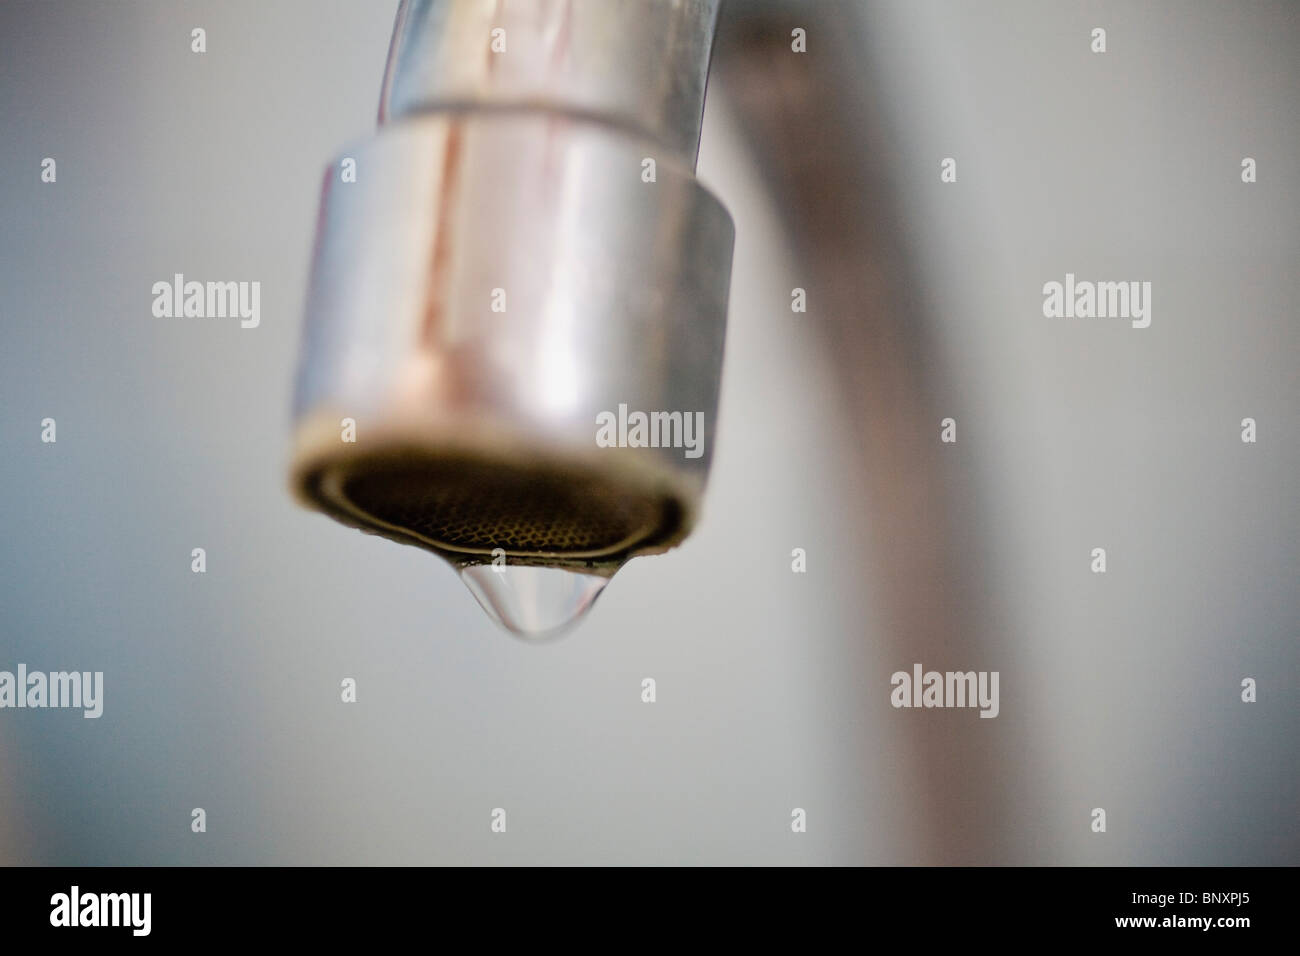 Dripping faucet - Stock Image